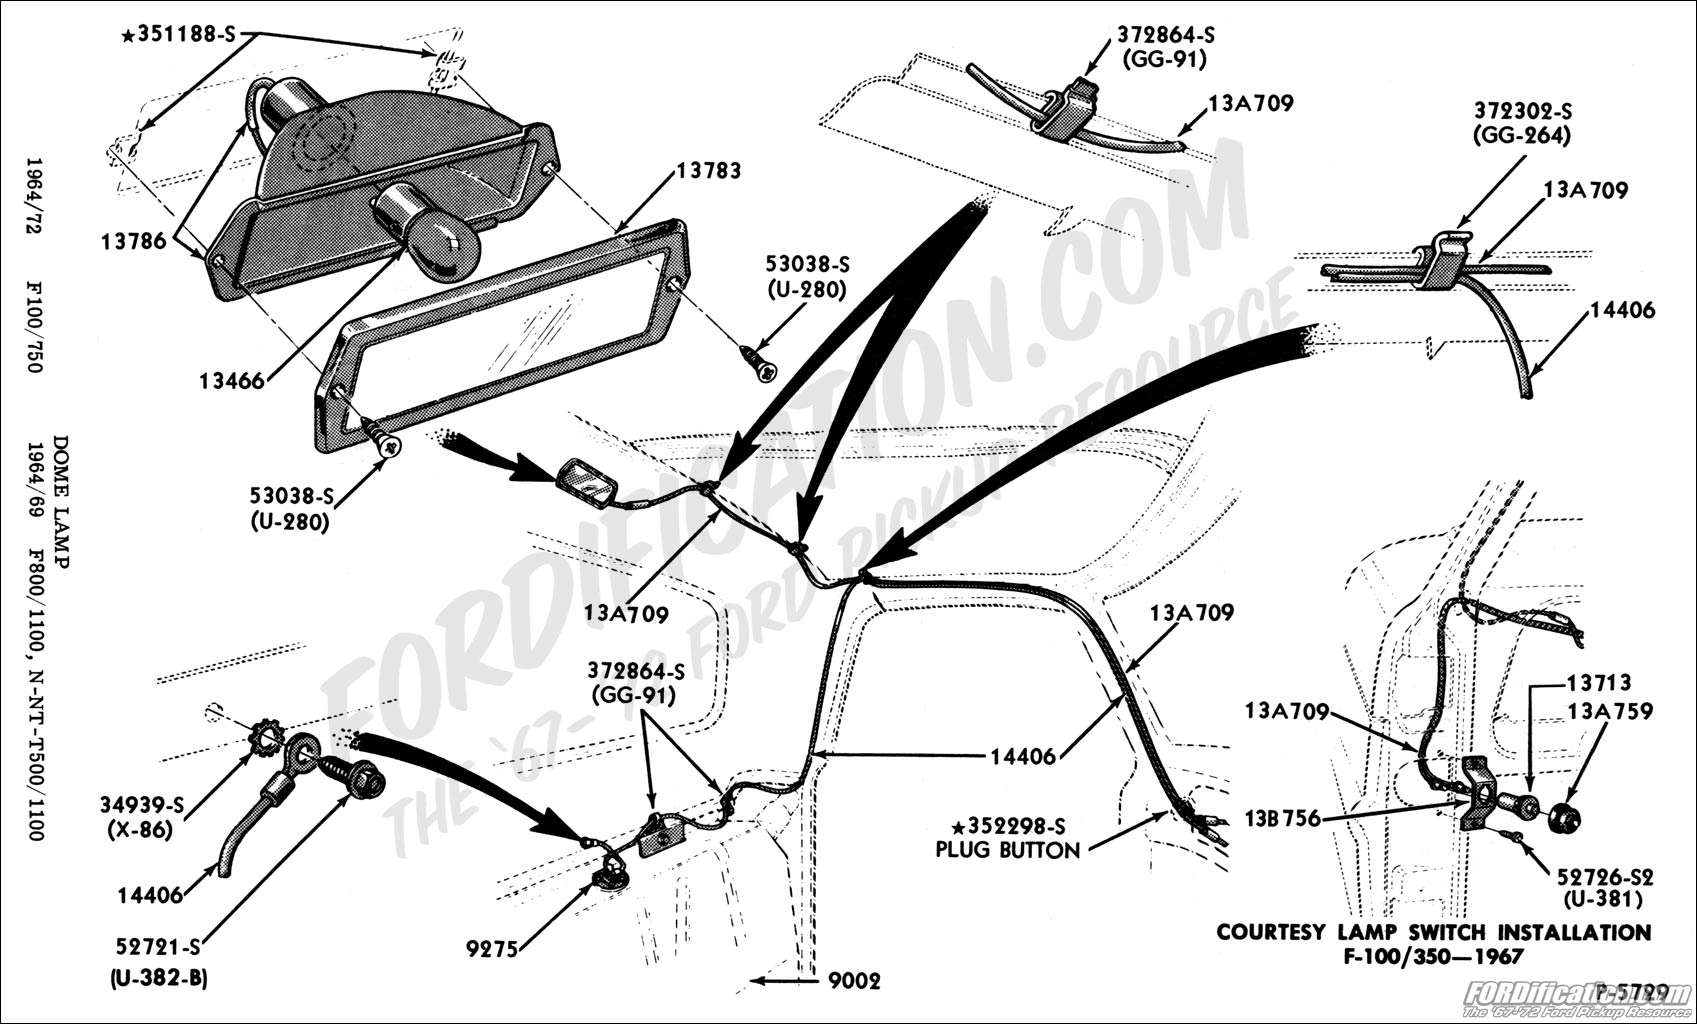 99 CIVIC WIRING DIAGRAM COURTESY LIGHTS L21935 likewise 489414684476493488 moreover Schematics i as well 328790 Need Tailgate Wiring Diagram additionally Schematics b. on 1968 ford f100 body parts